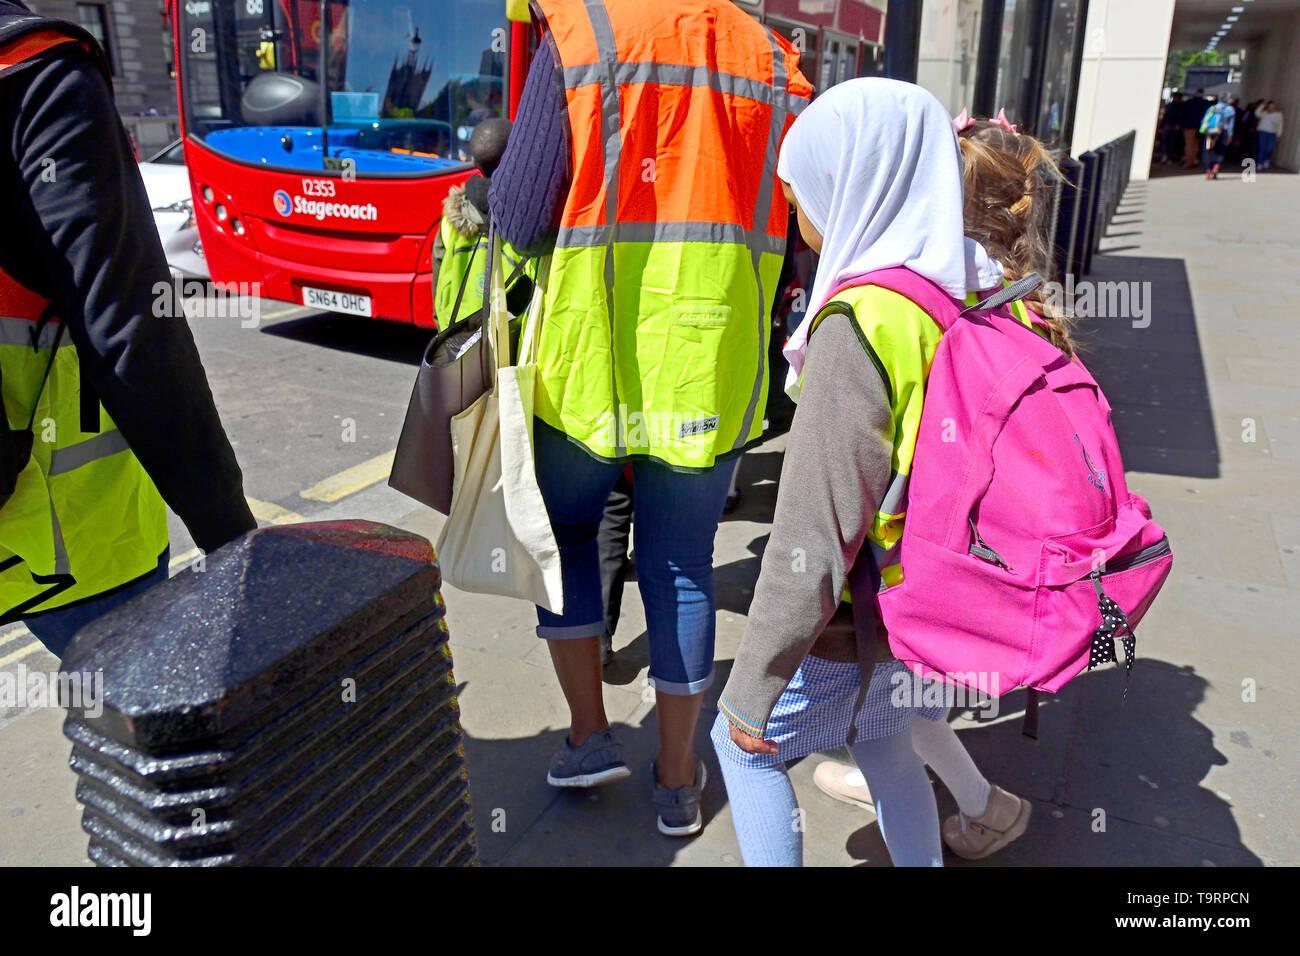 London, England, UK. Schoolchildren waiting to get on a bus - young girl wearing a headscarf - Stock Image